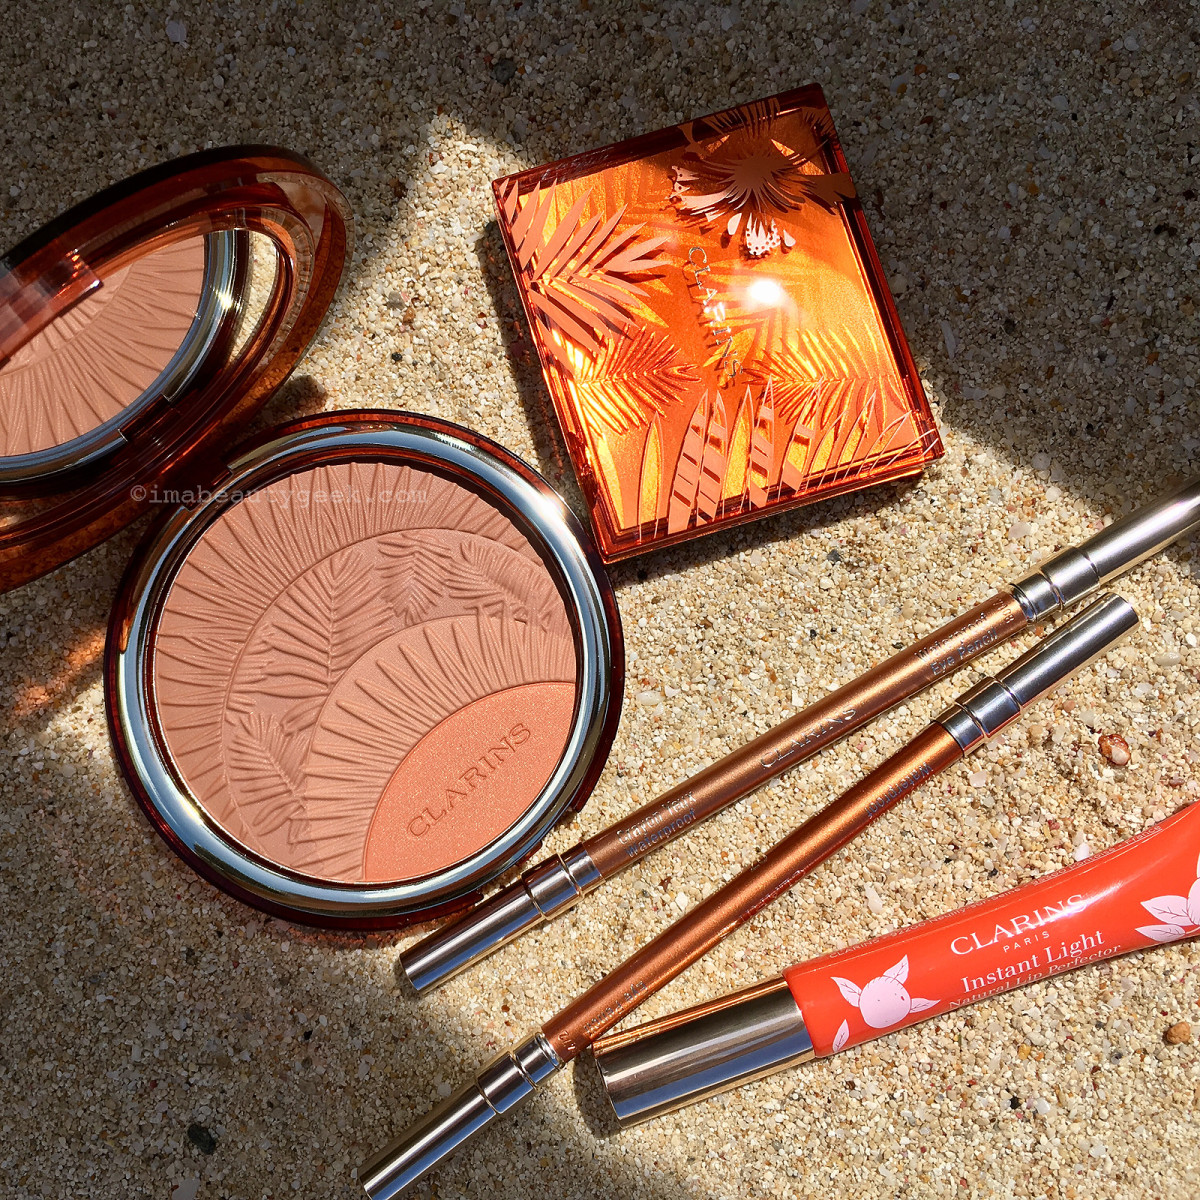 Clarins Summer 2017 makeup + new Instant Light Natural Perfector in Juicy Mandarin